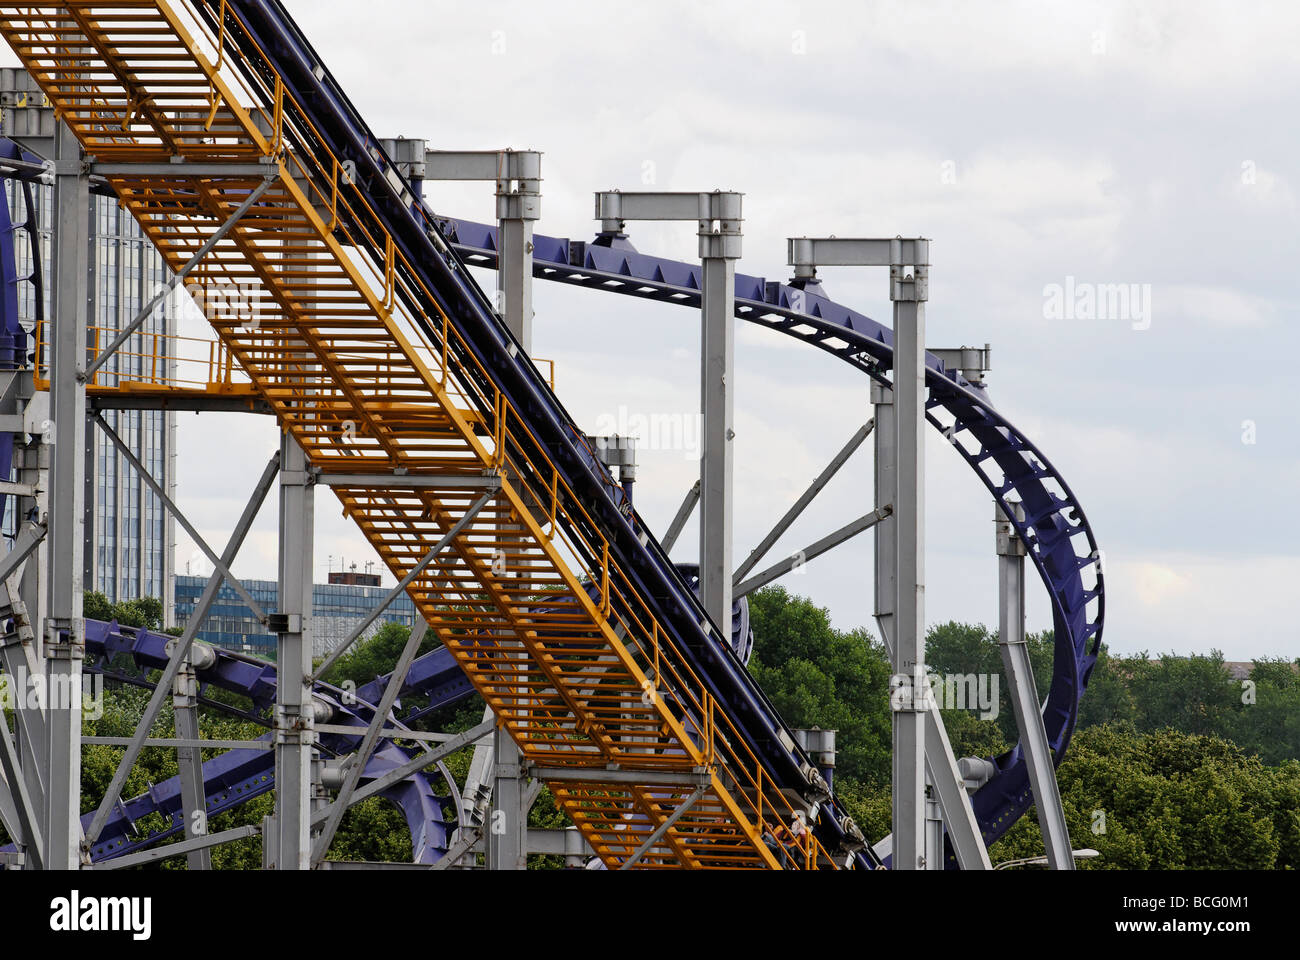 The roller coaster in Moscow is a paradise for extreme lovers 33